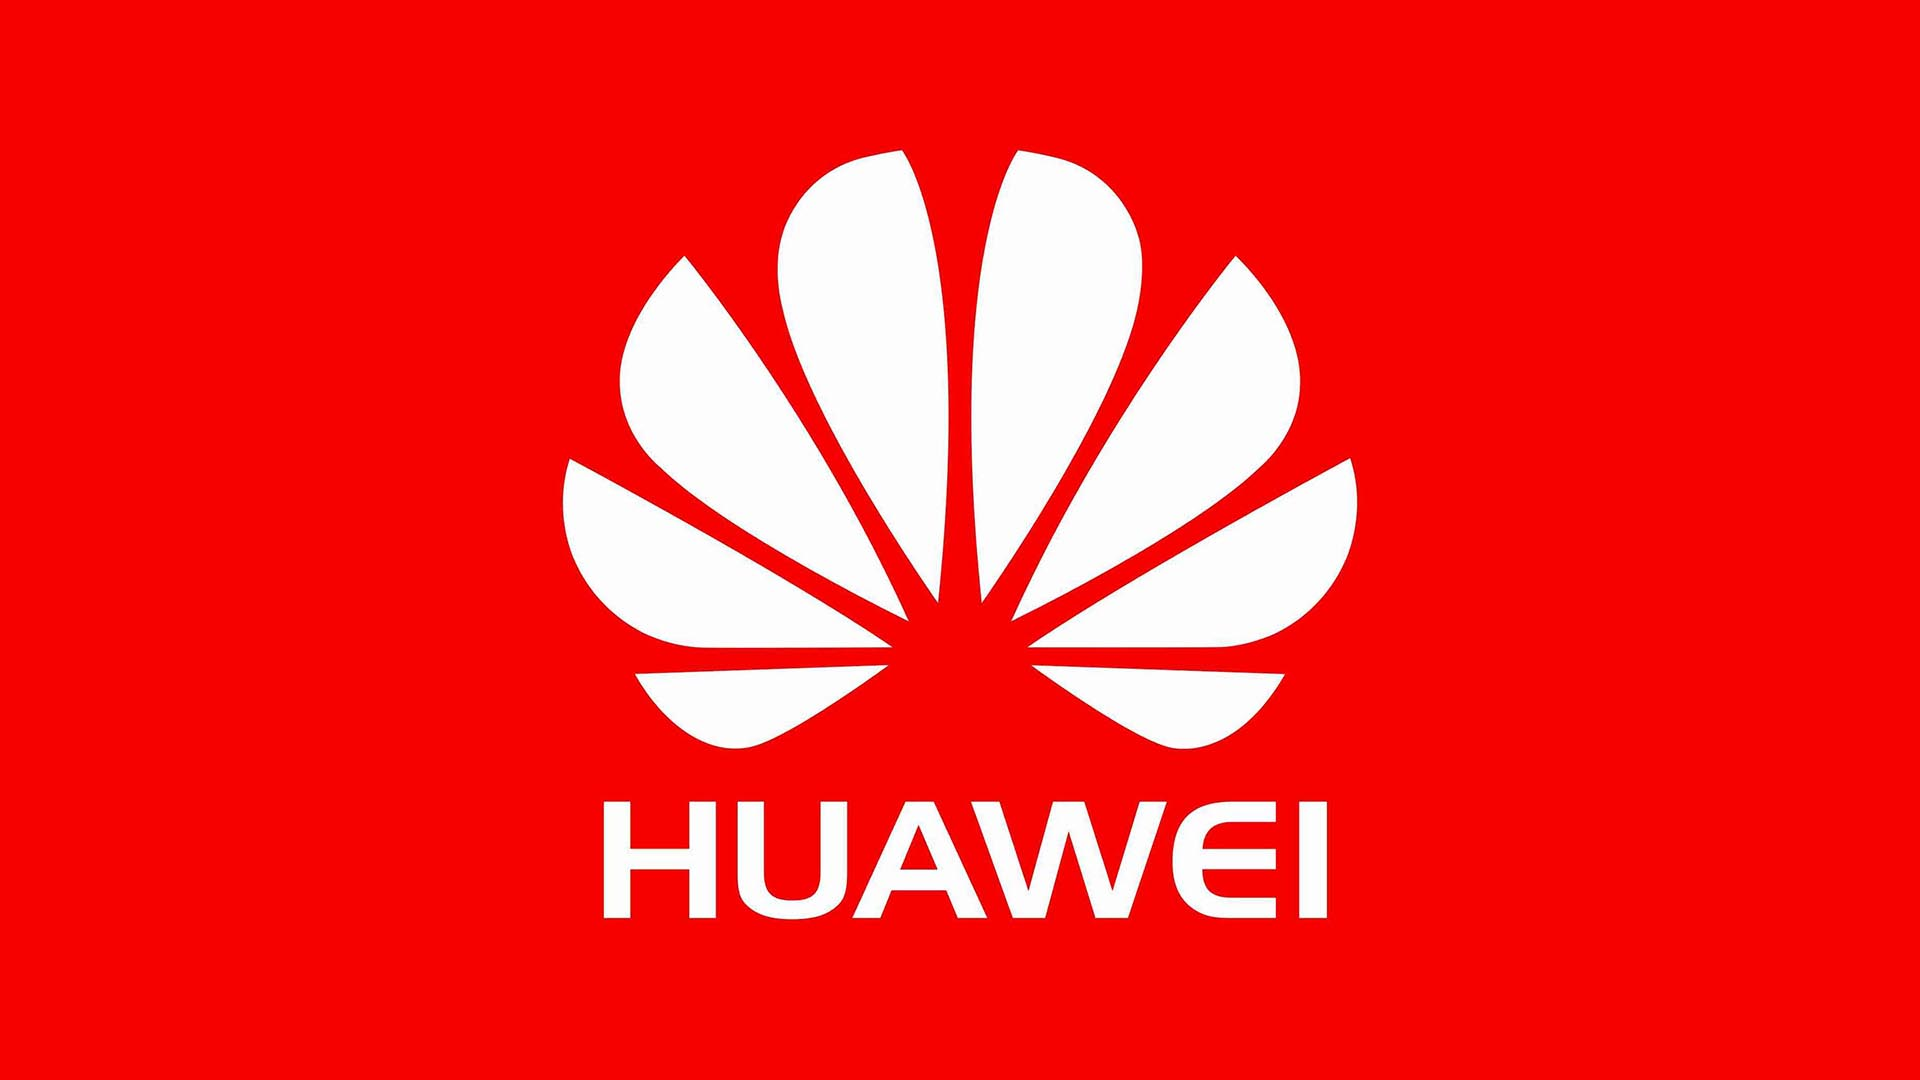 Huawei founder speaks with BBC about CFO arrest and company's future